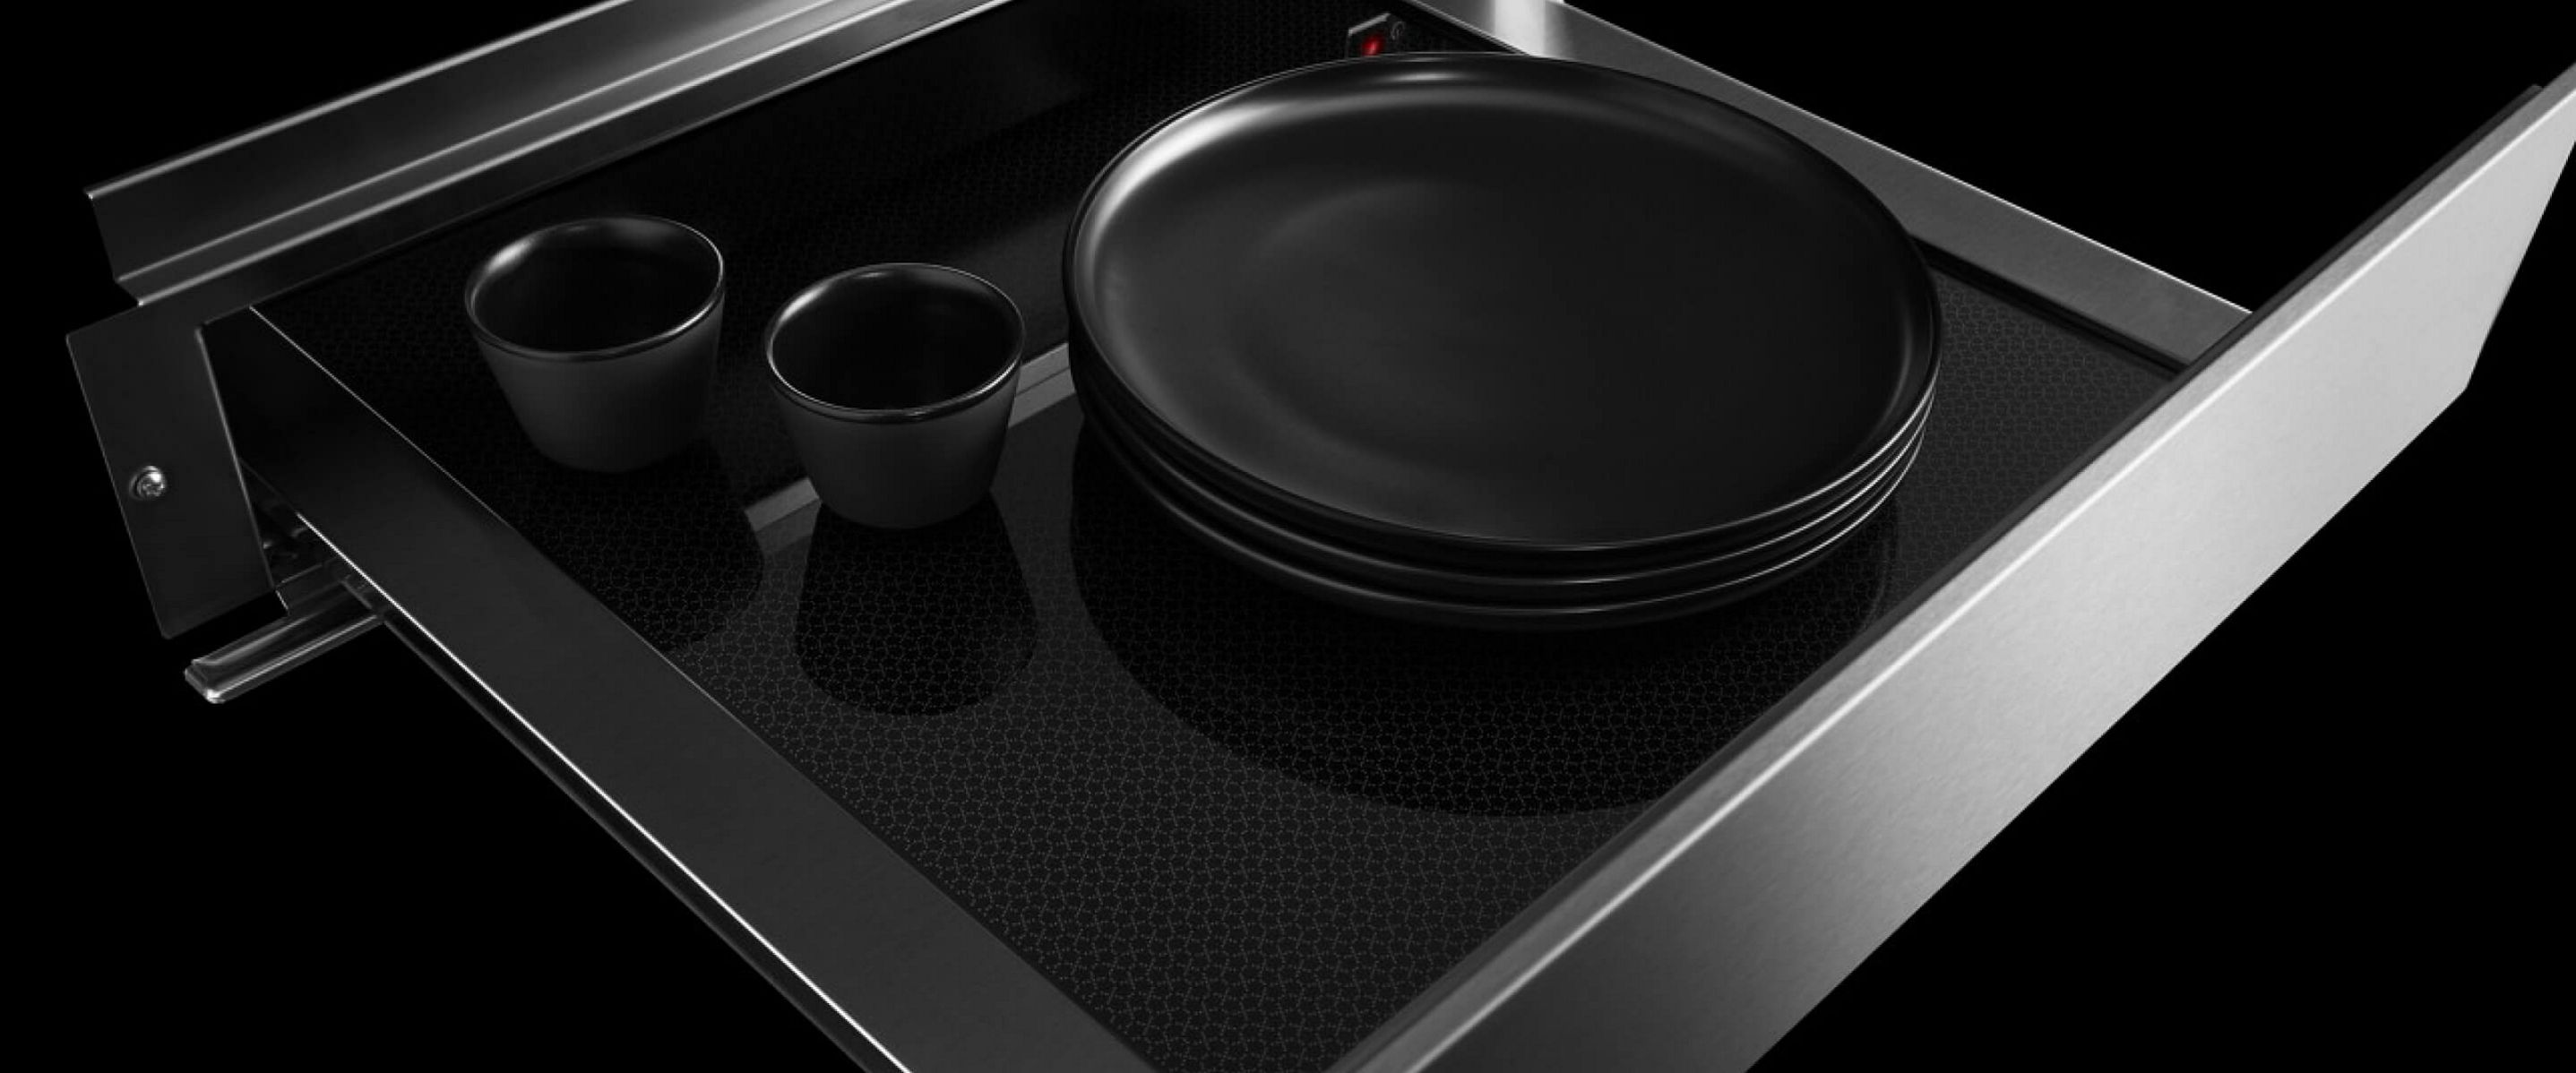 An open JennAir® warming drawer filled with plates and mugs.